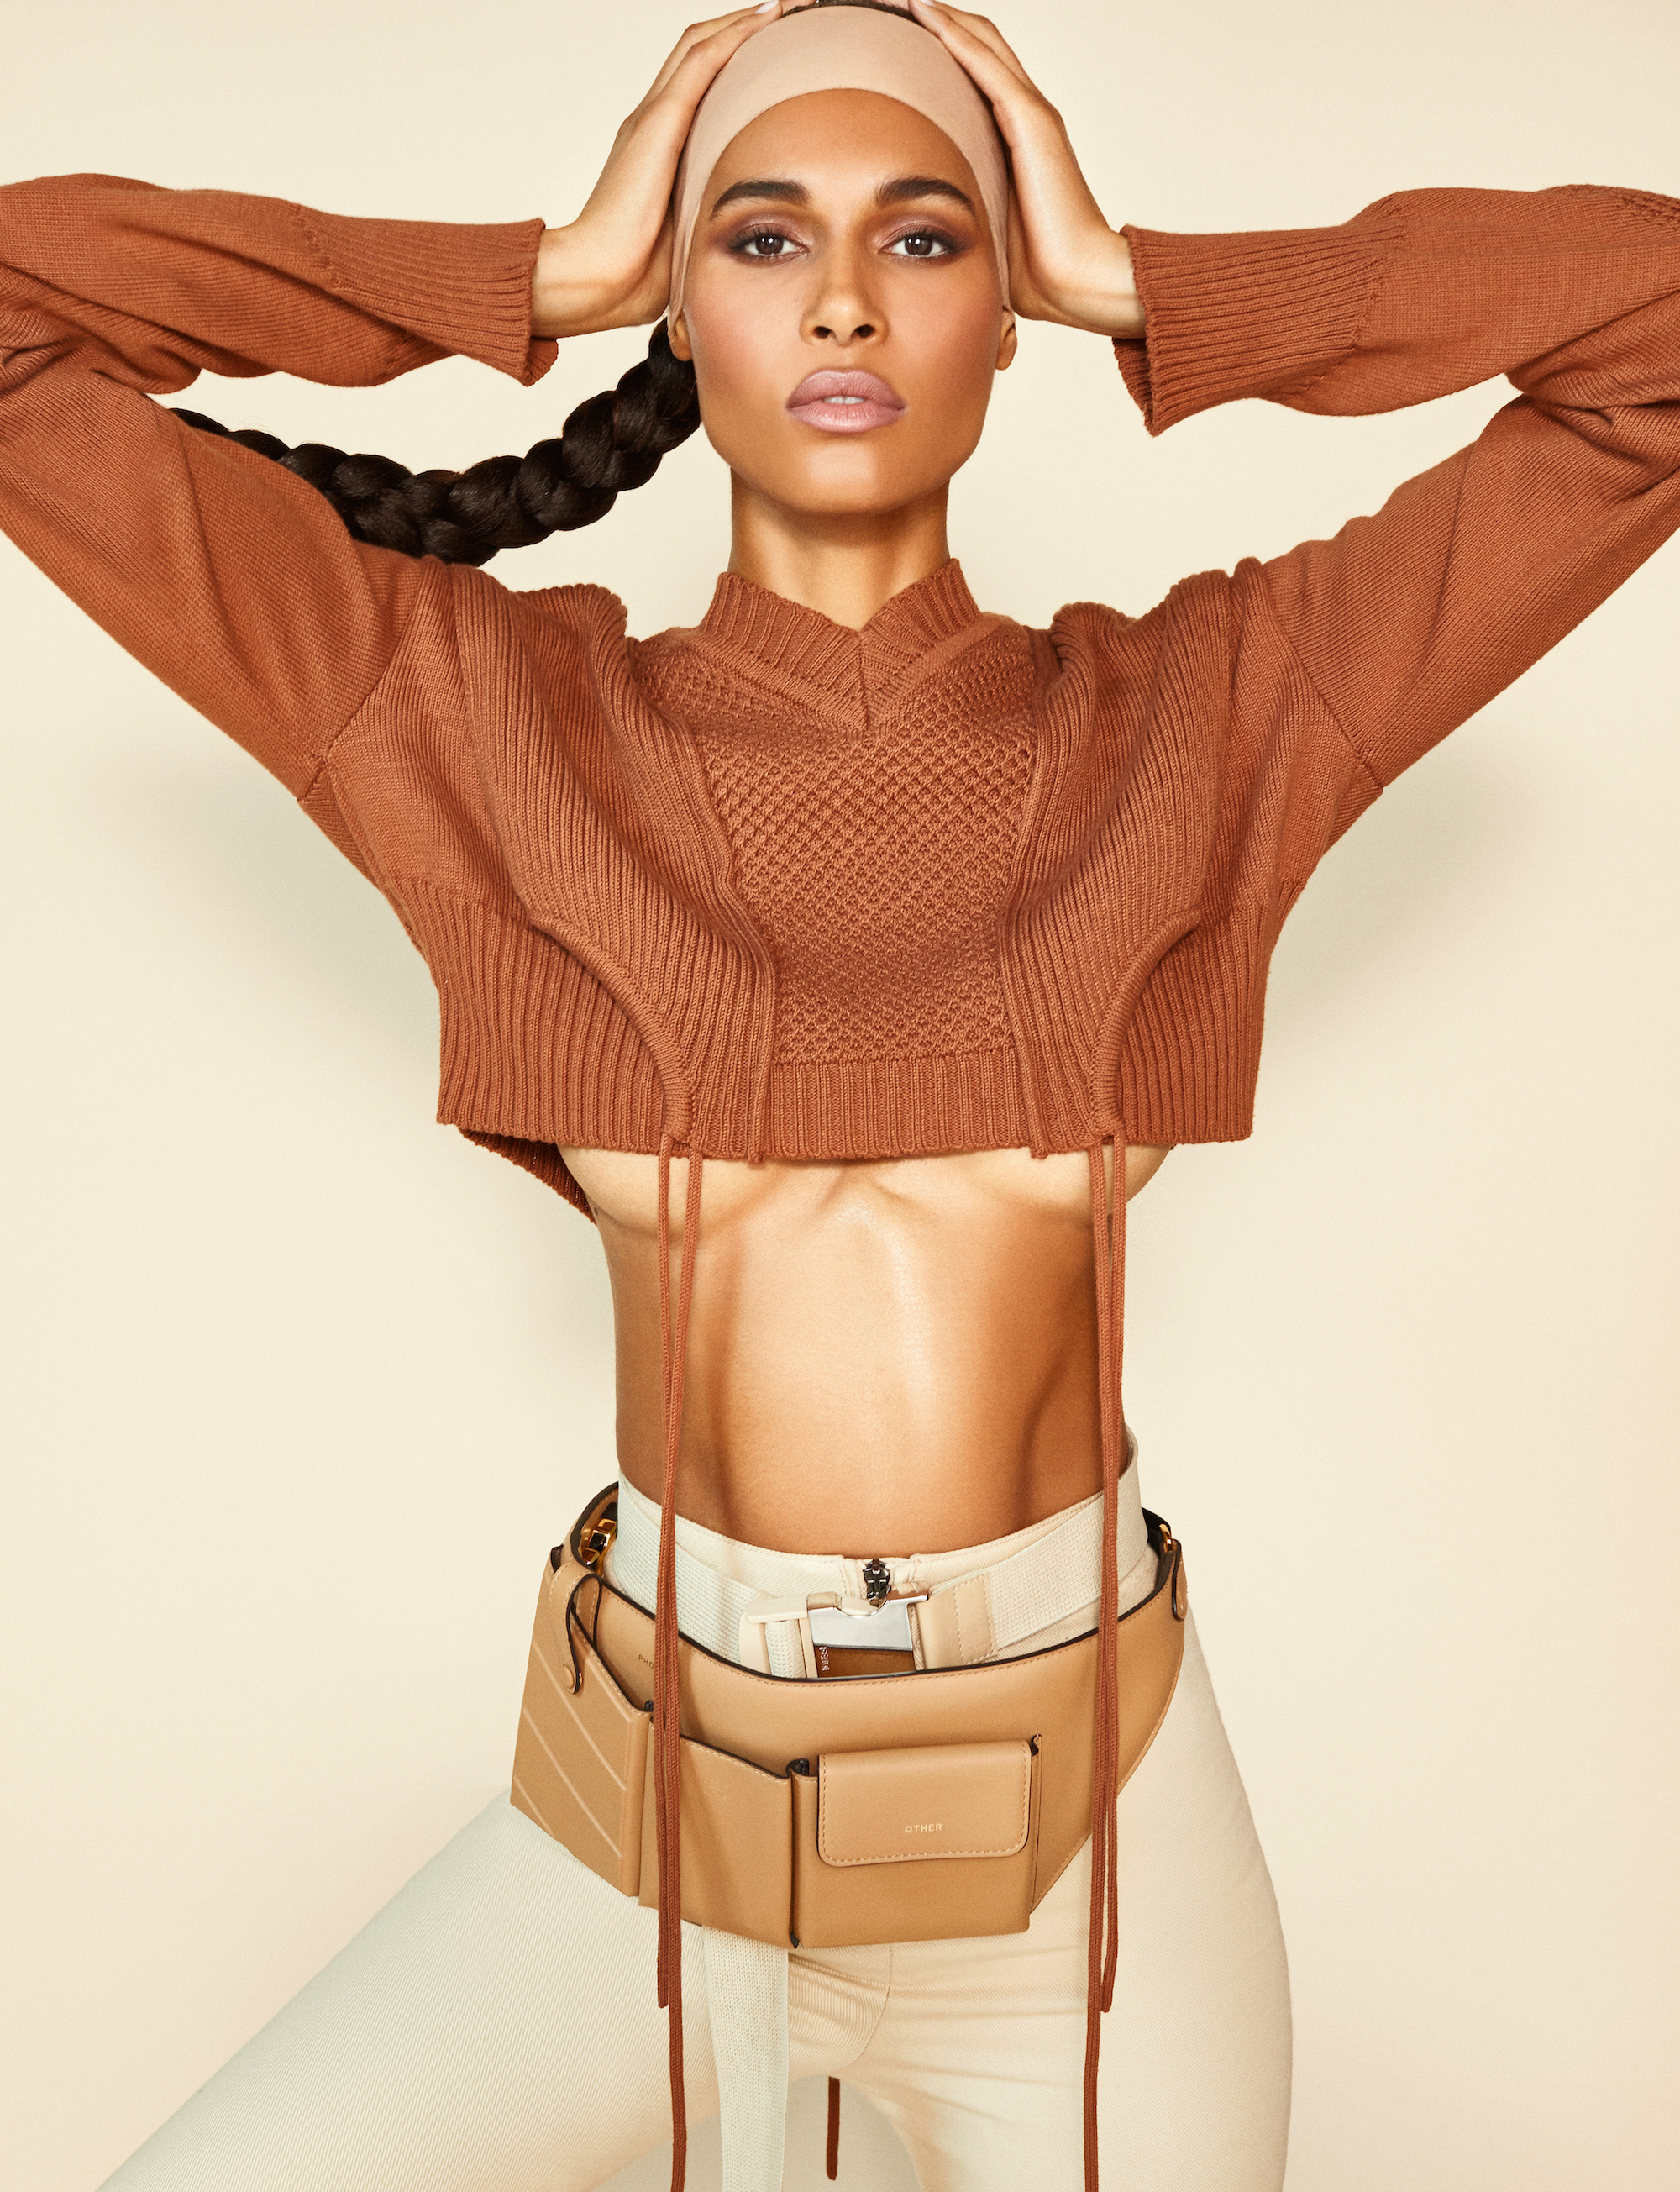 Cindy Bruna in Fendi for the Spring 19 issue in crop top